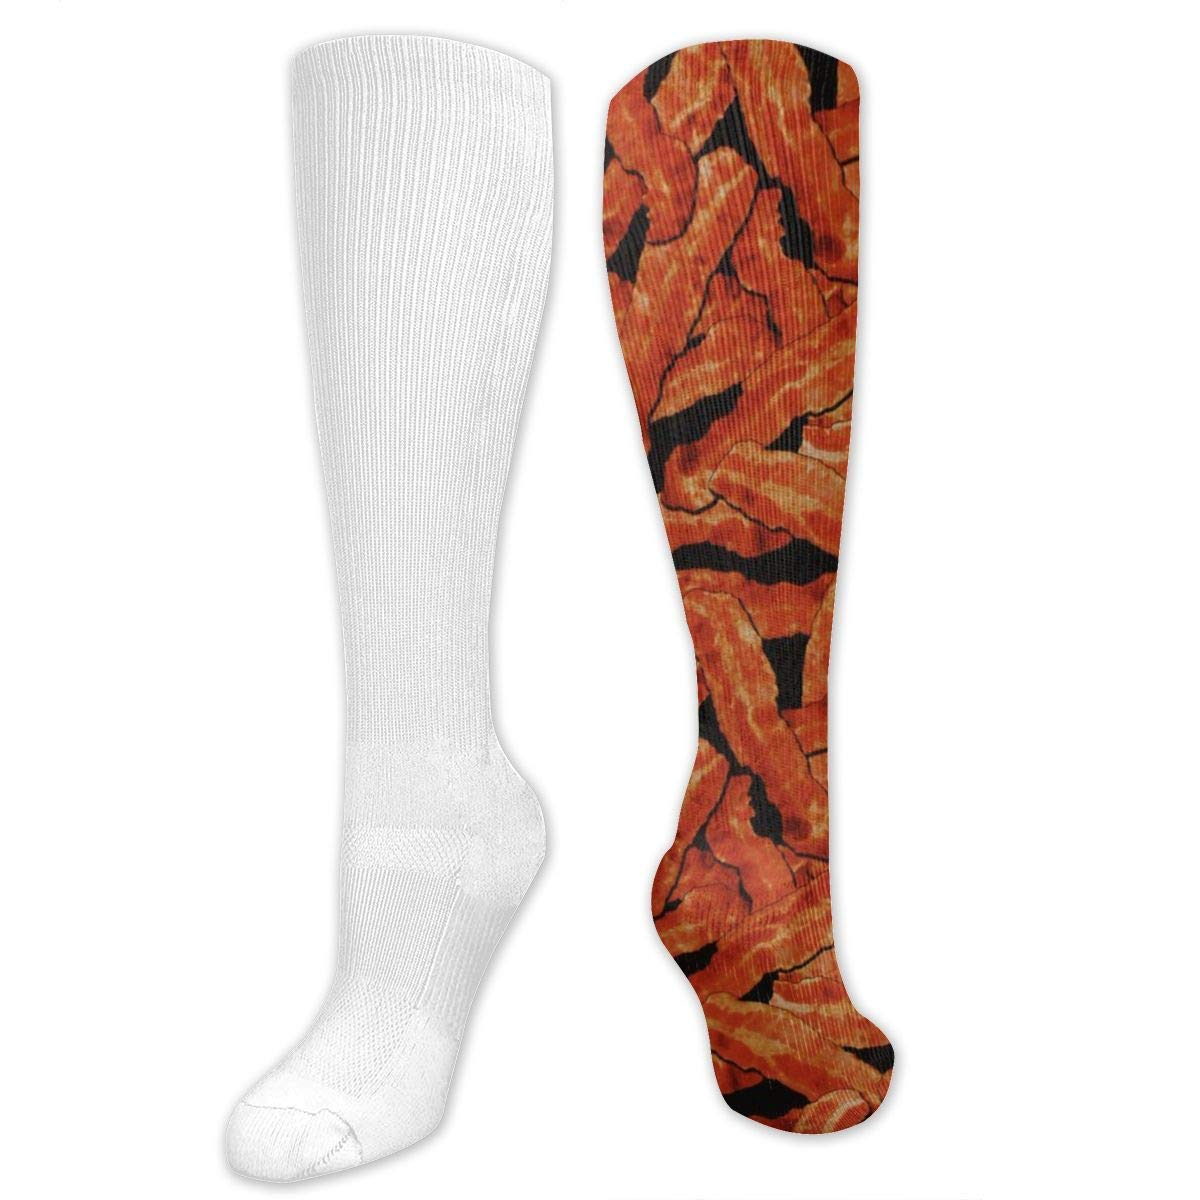 Bacon Slices Breakfast Mens//Womens Sensitive Feet Wide Fit Crew Socks and Cotton Crew Athletic Sock